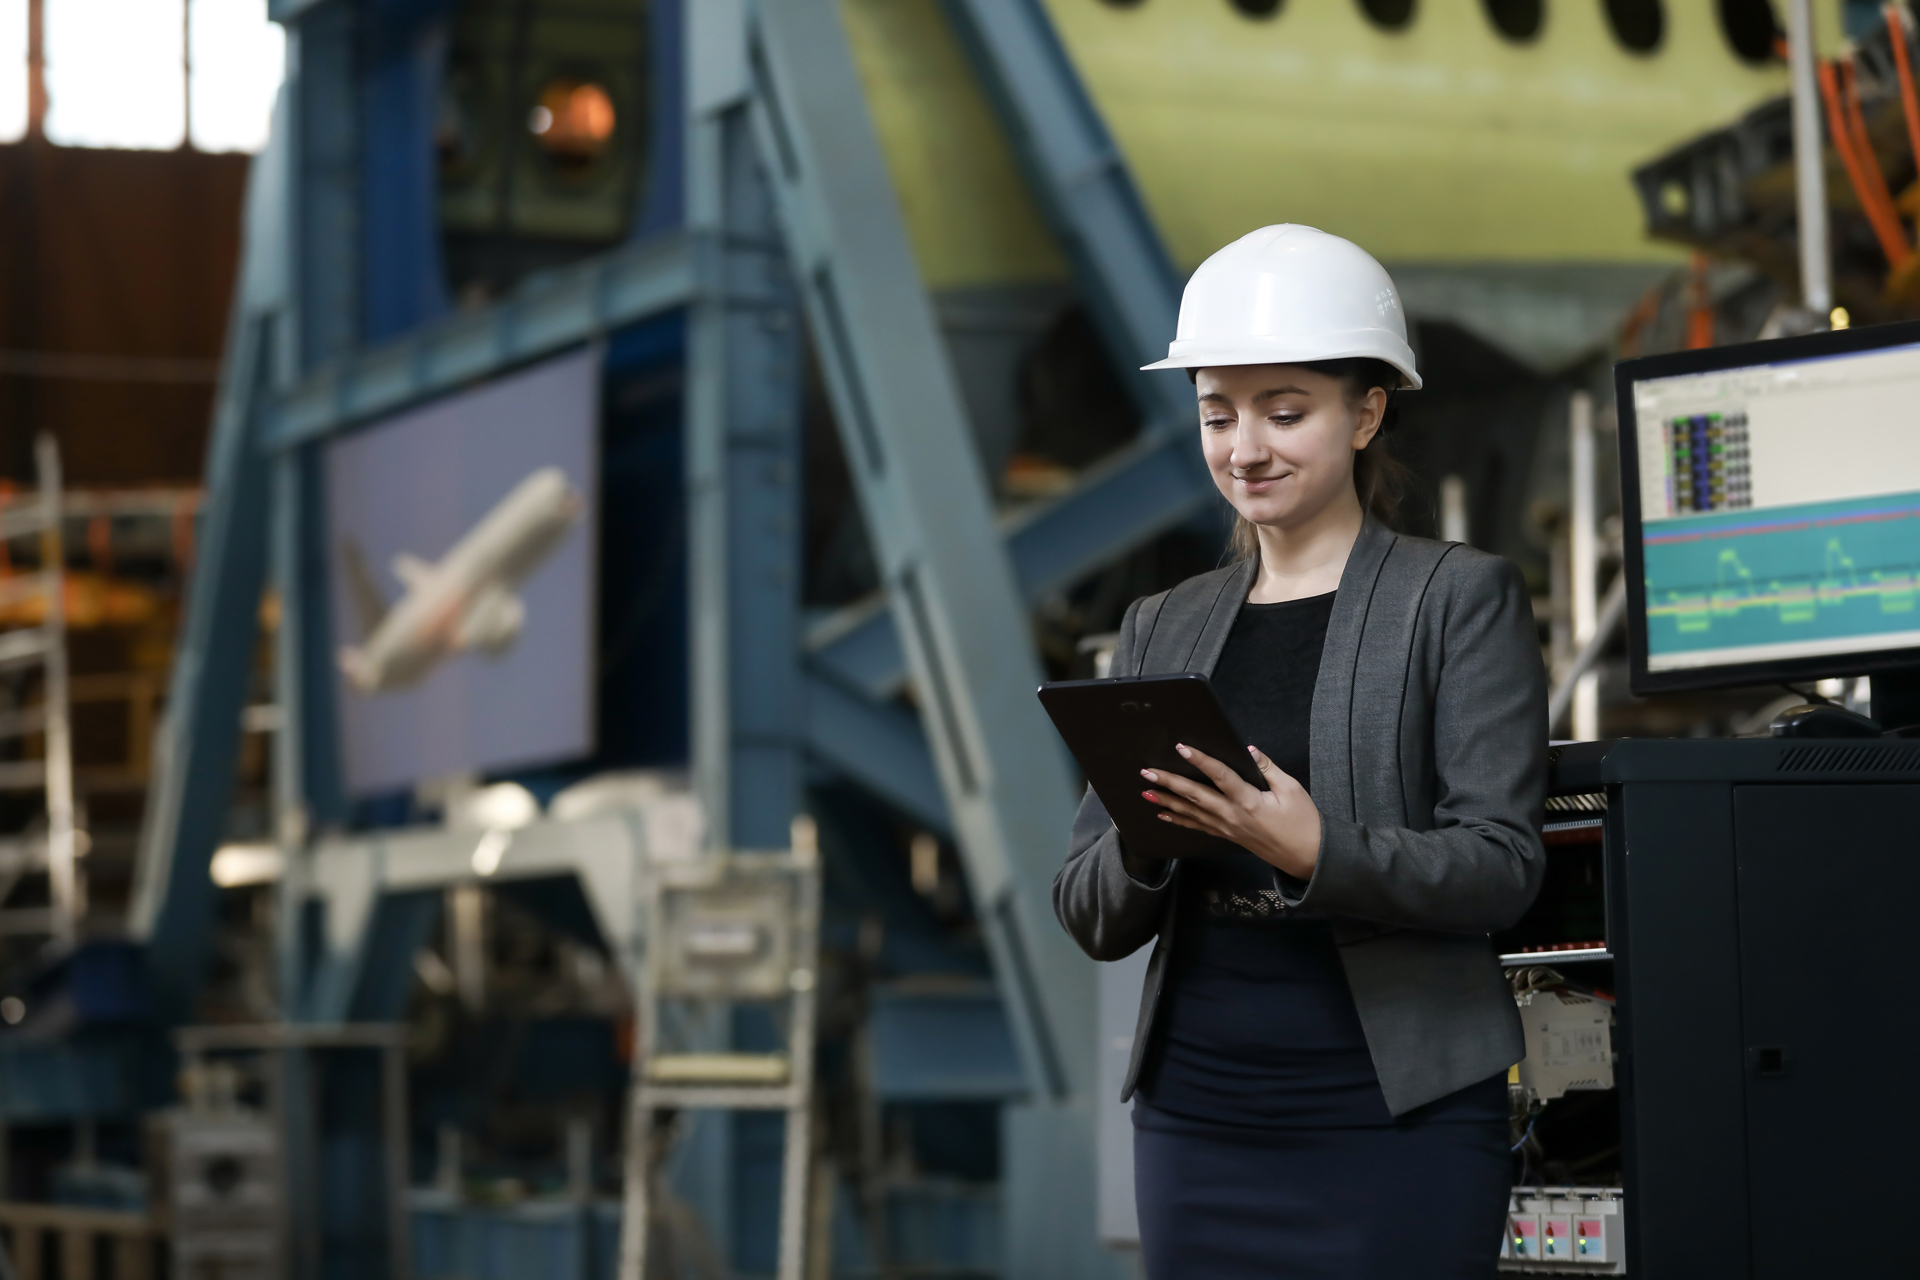 Manufacturing-Speciliast-Configuring-ERP-System-Aerospace-Industry